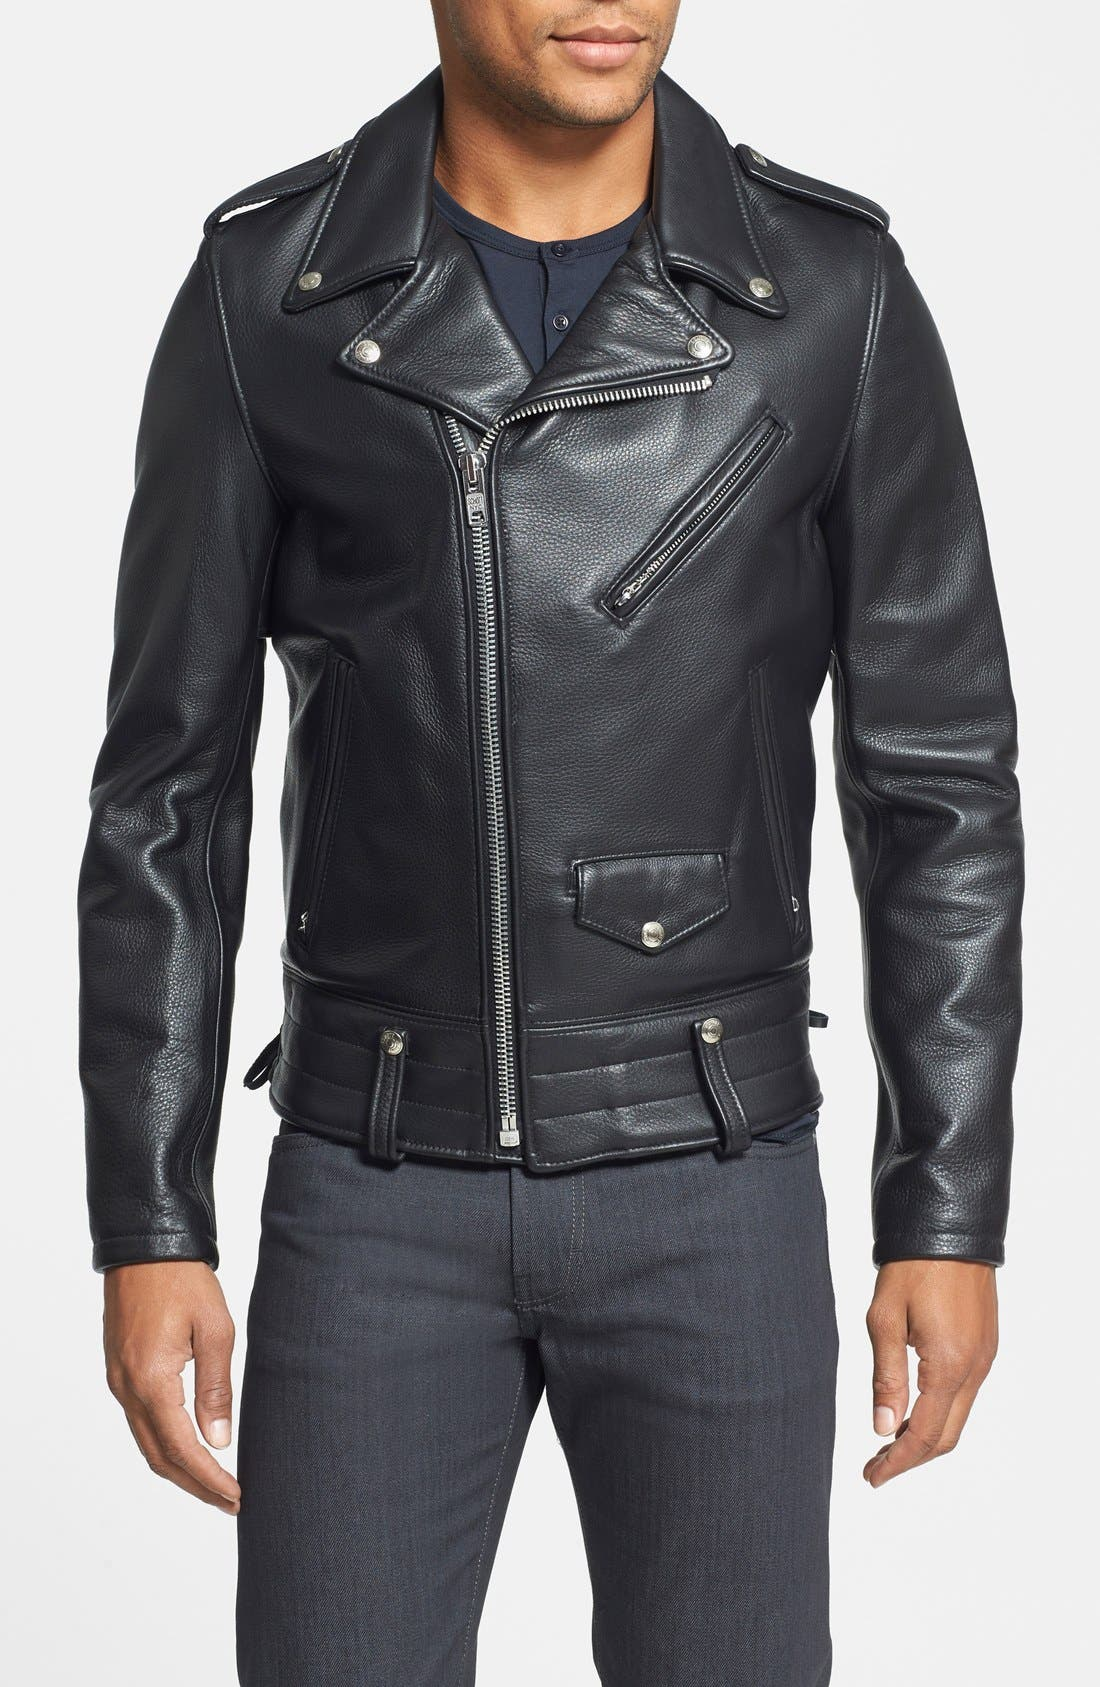 'Chips' Slim Fit Moto Leather Jacket,                             Main thumbnail 1, color,                             Black